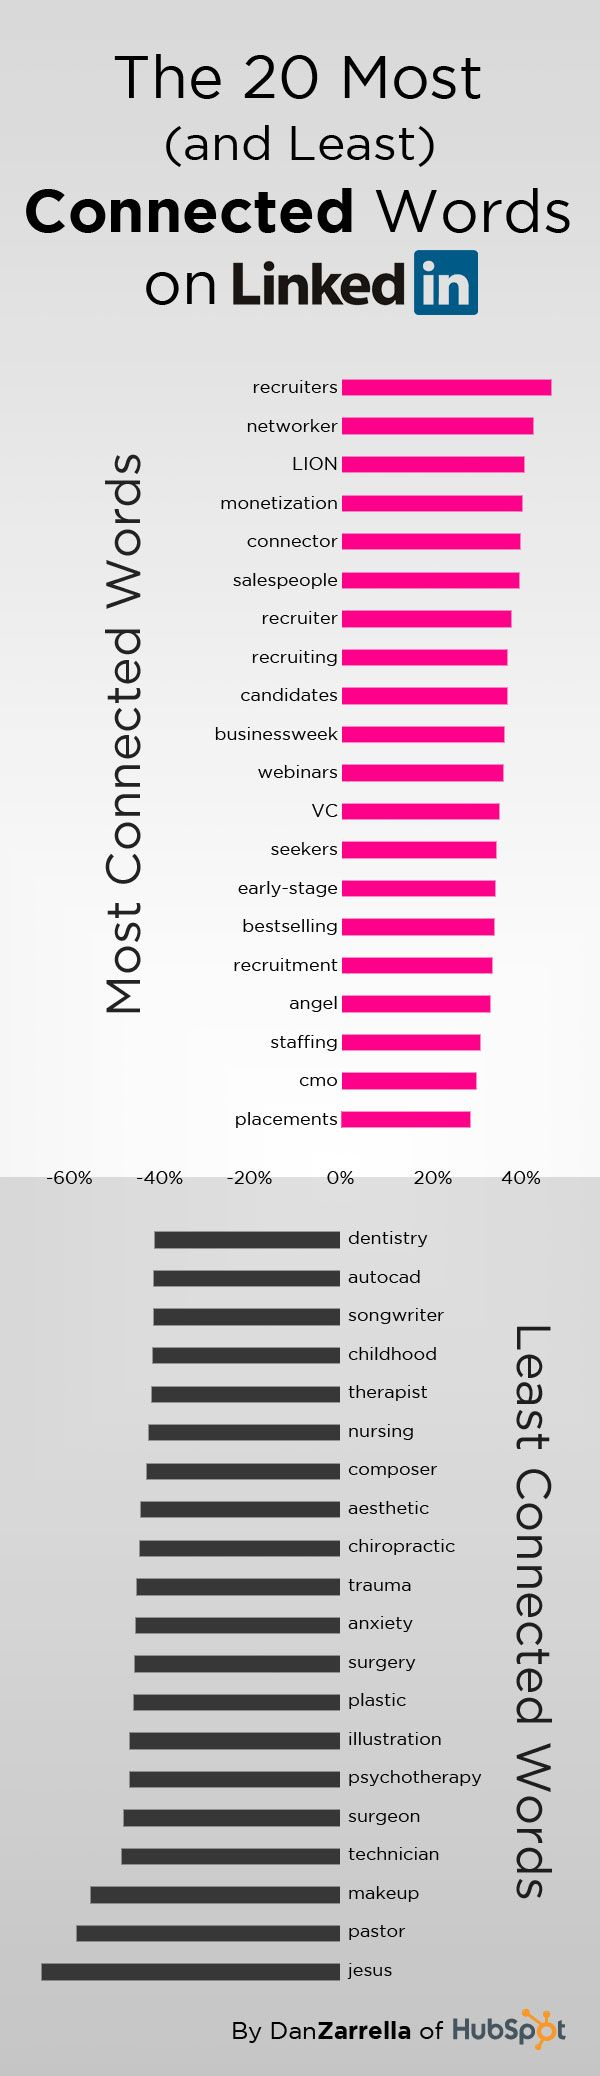 The 20 Most (and Least) Connected Words on LinkedIn